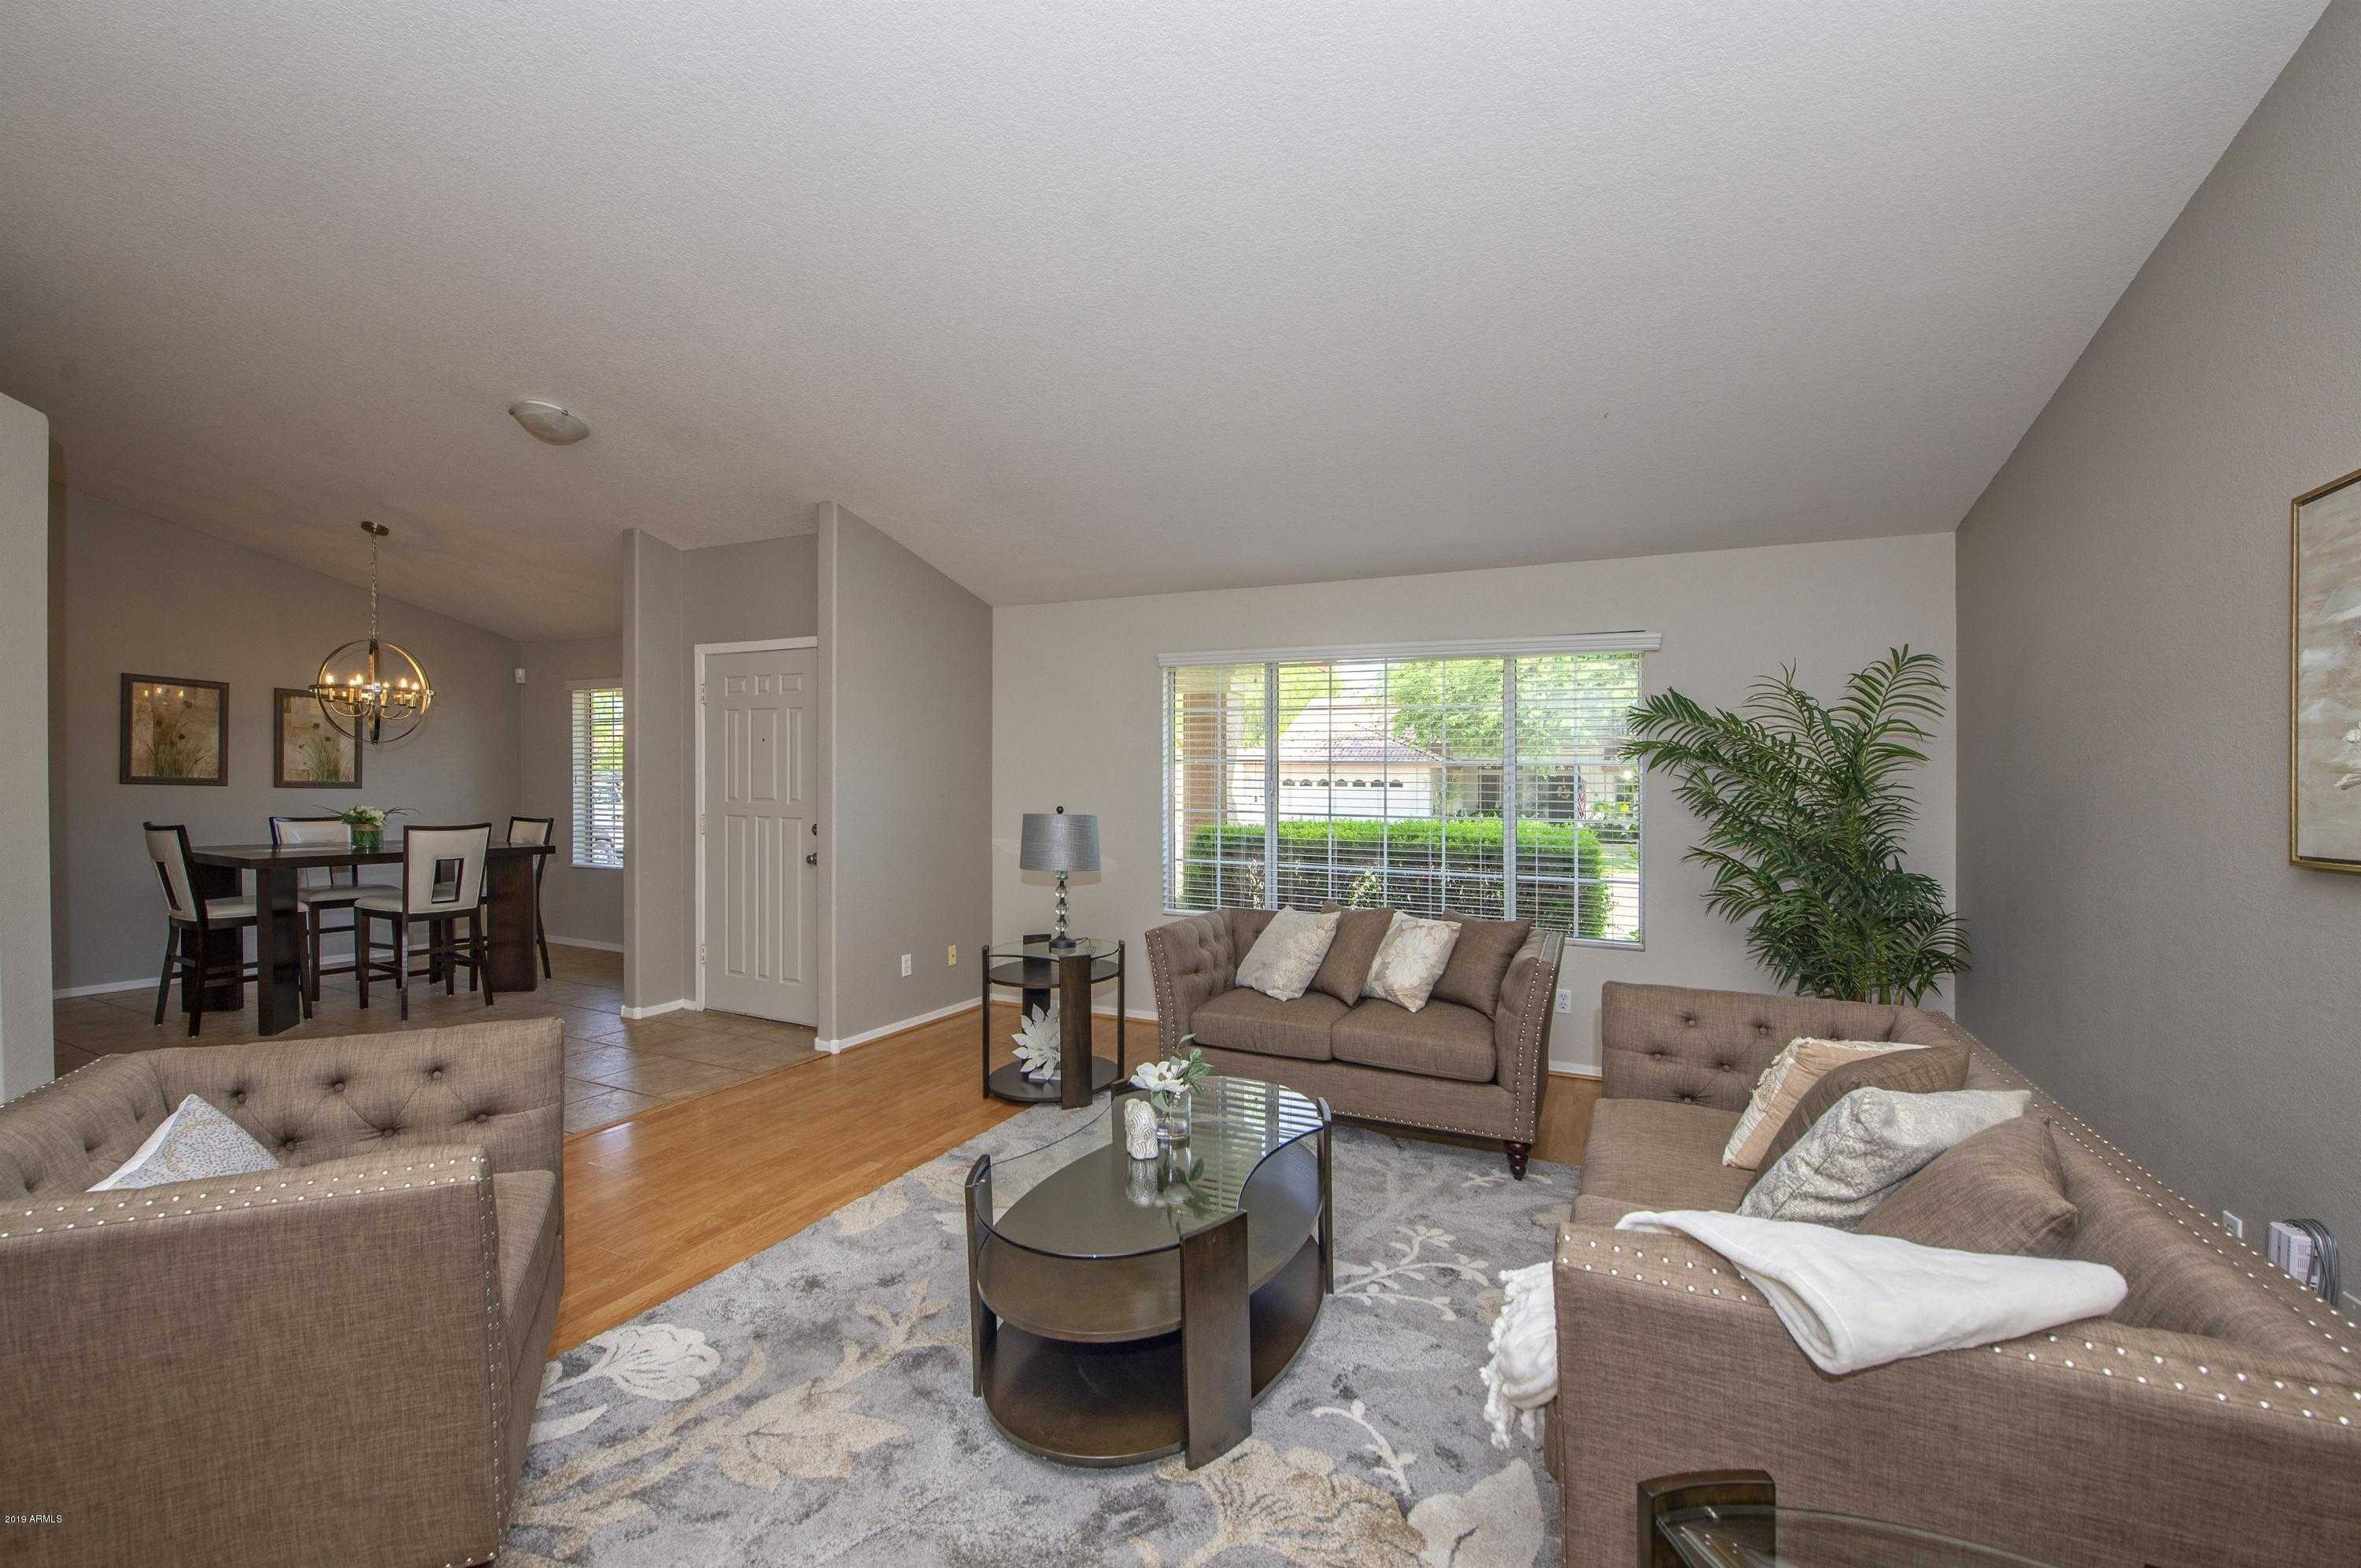 $332,000 - 4Br/2Ba - Home for Sale in Pinnacle Hill Lot 1-259 Tr A-o, Glendale